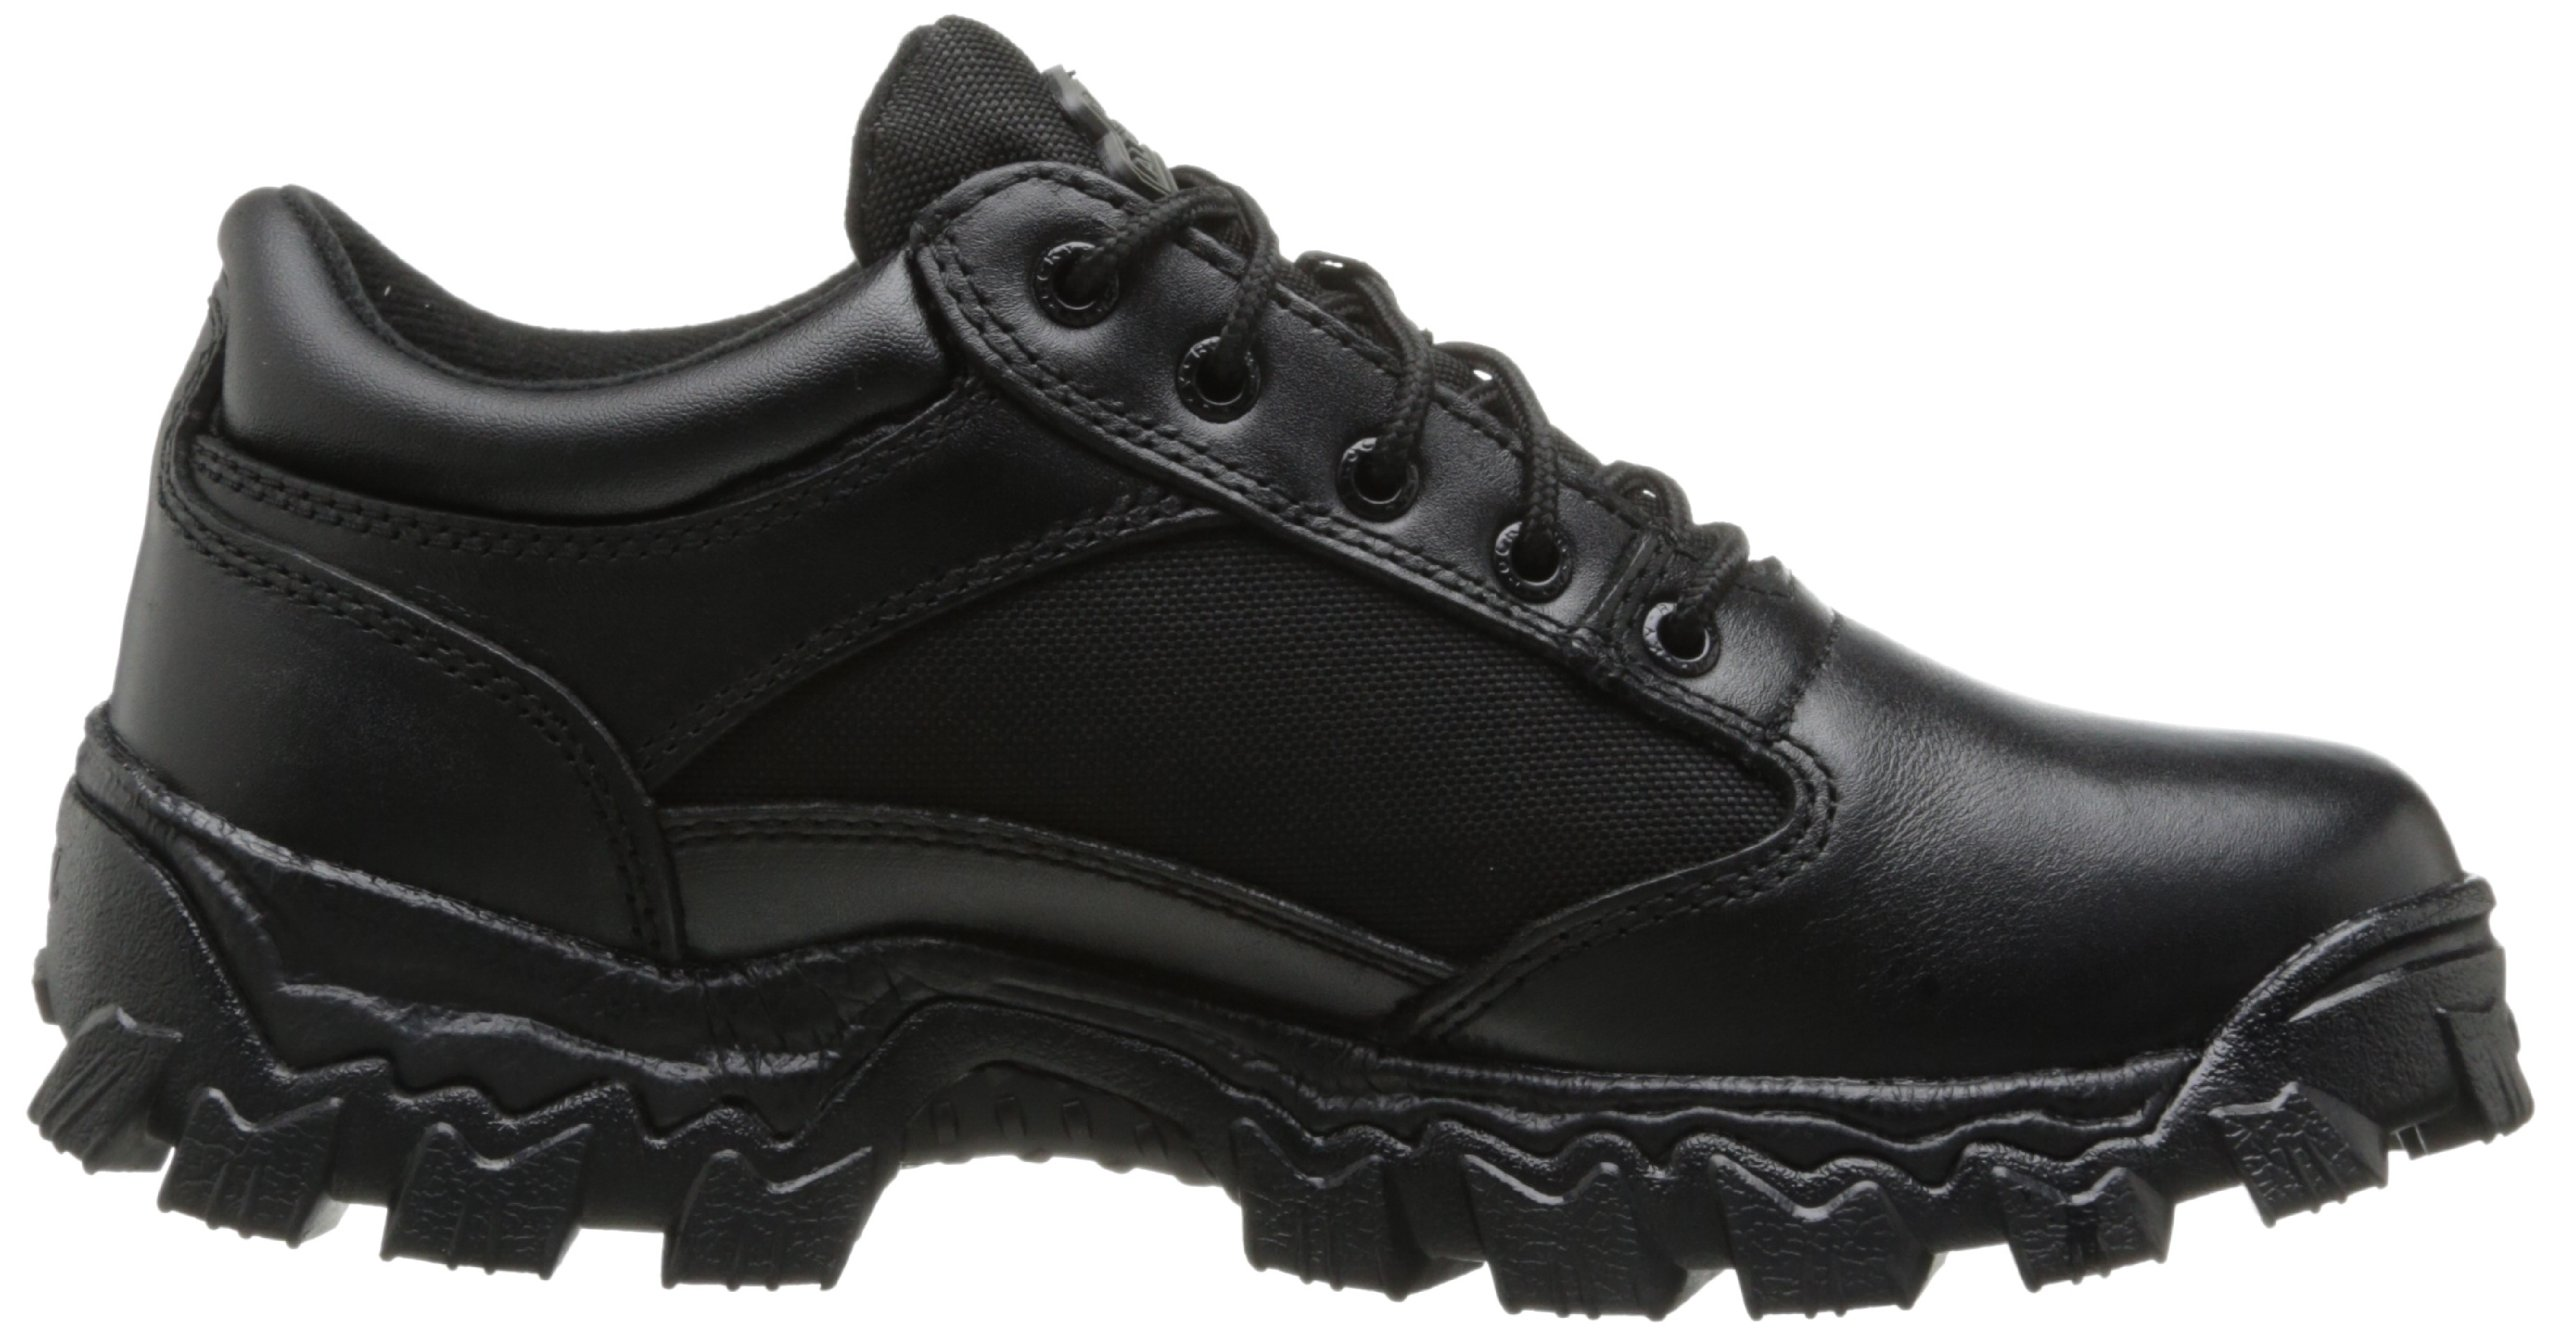 Rocky Men's Alpha Force Oxford-M, Black, 9.5 W US by Rocky (Image #6)